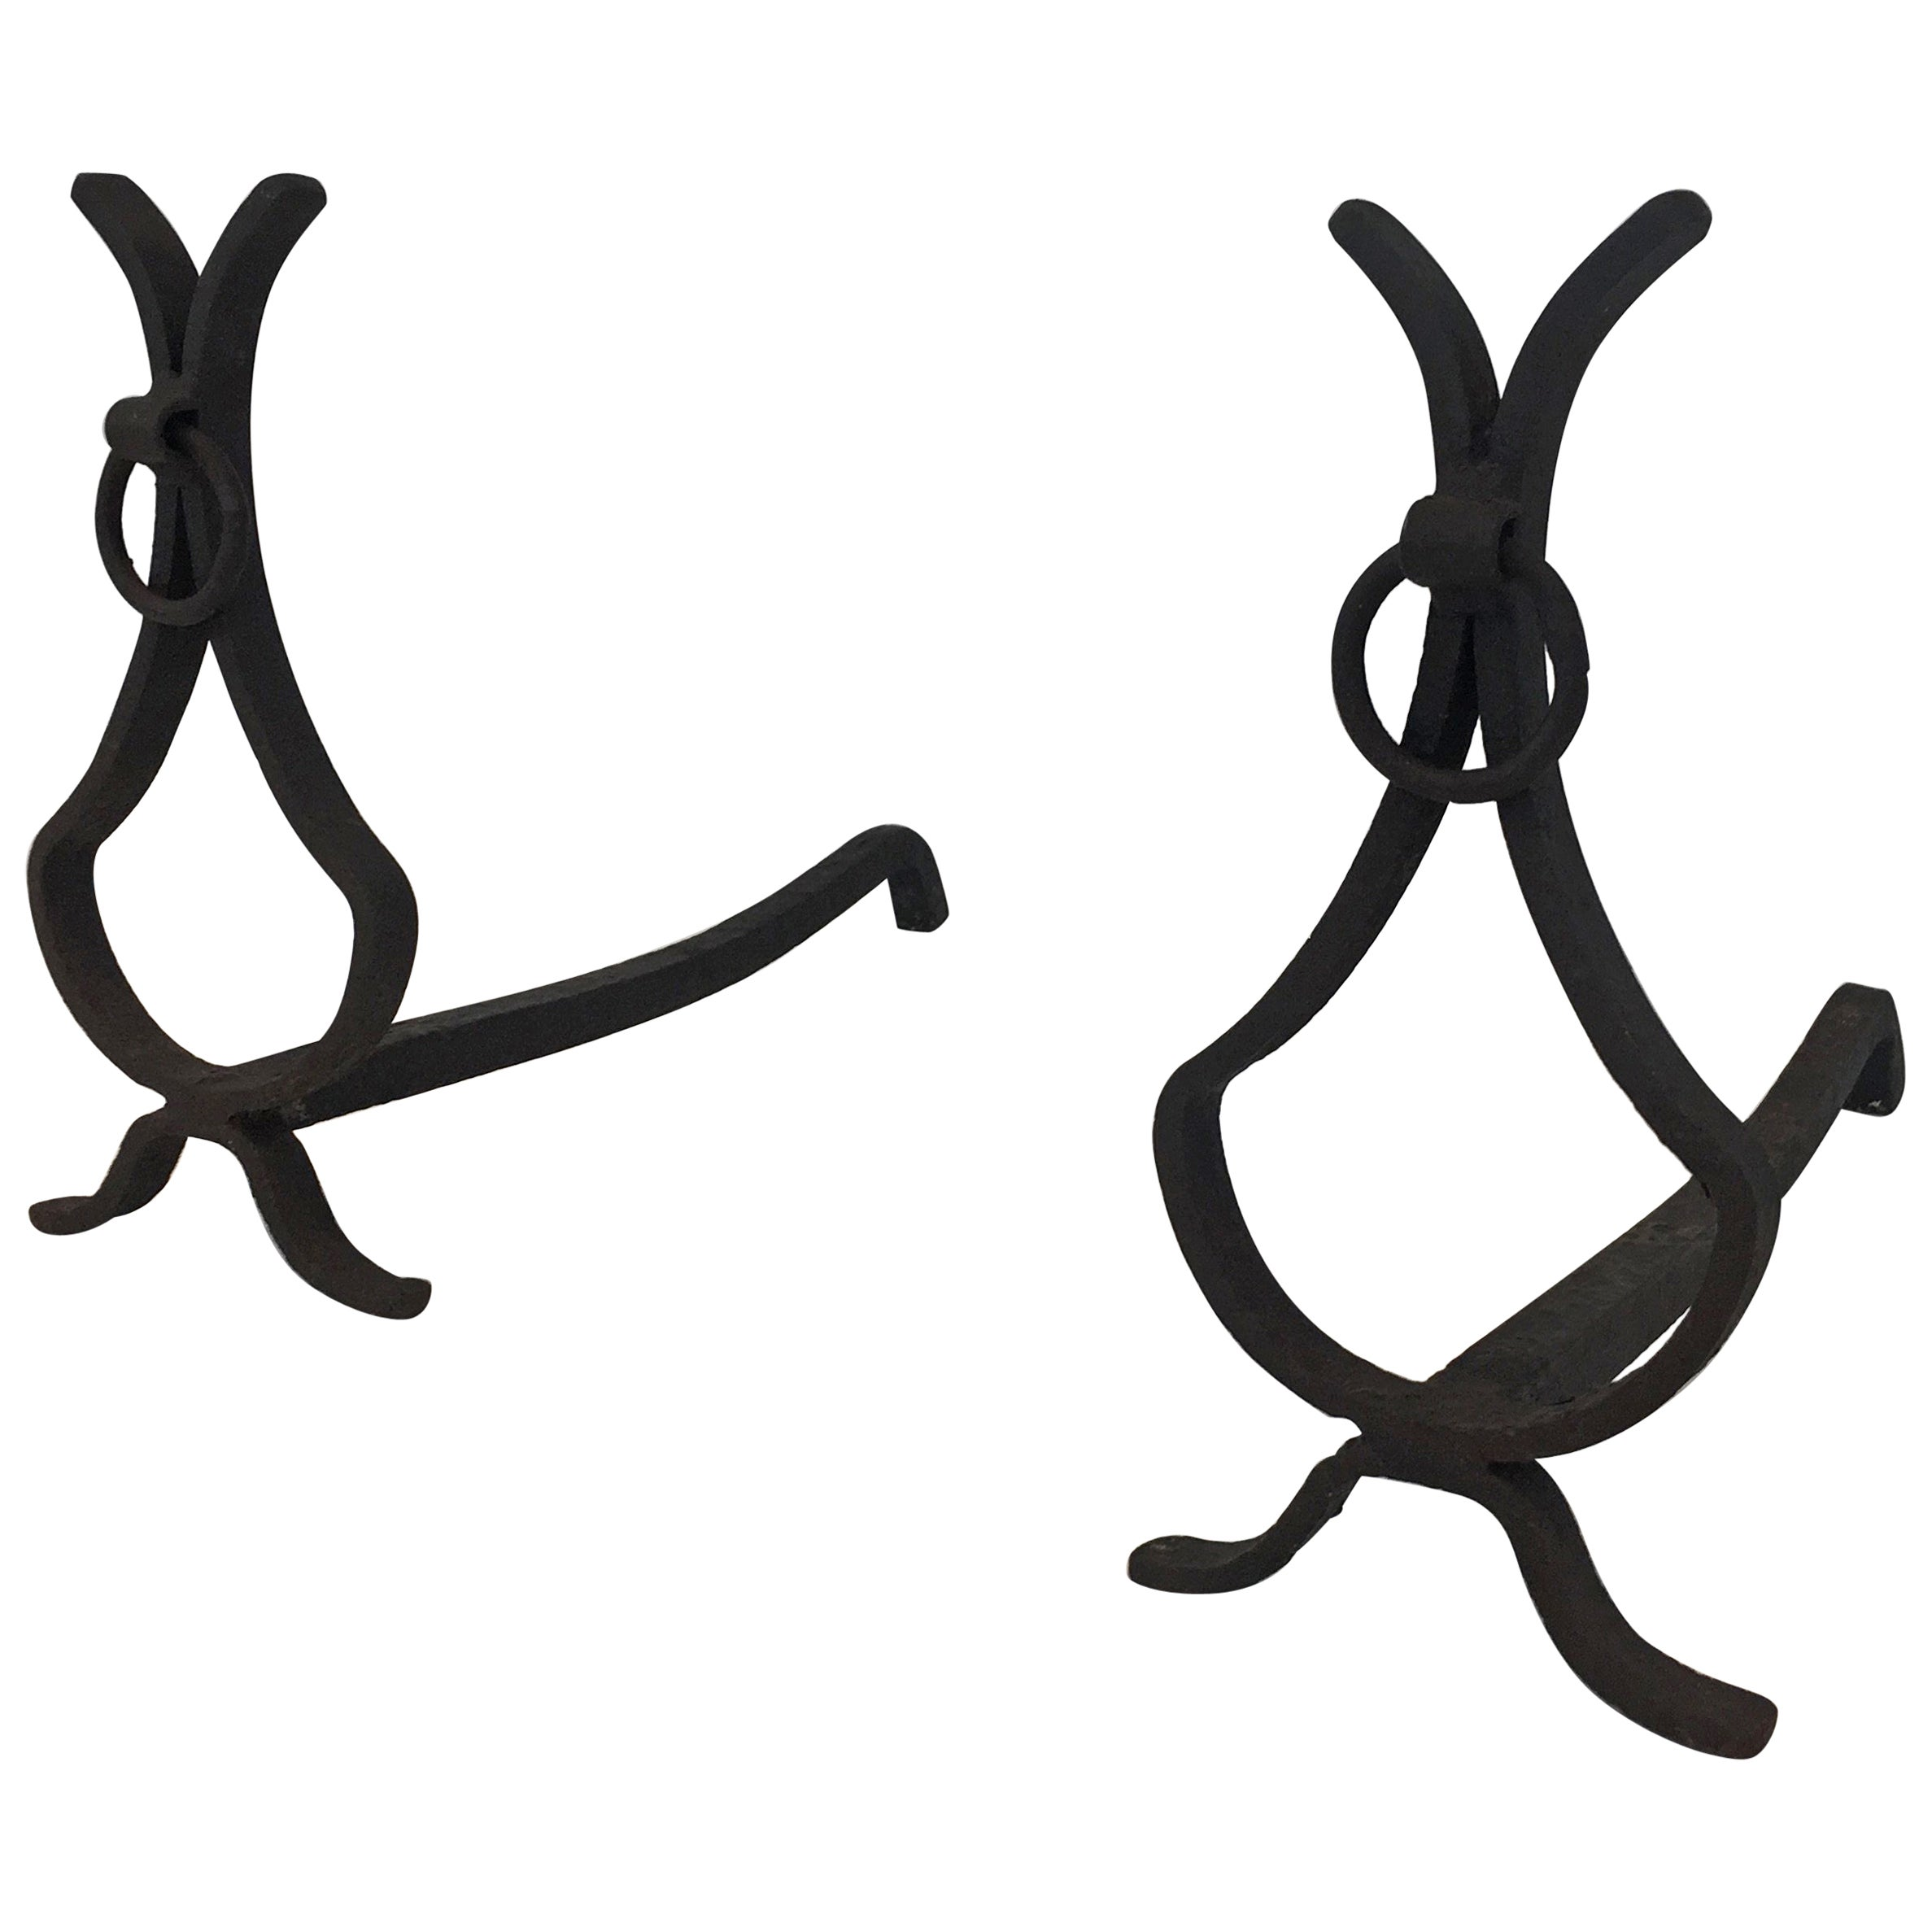 Pair of wrought Iron Andirons, French, circa 1940